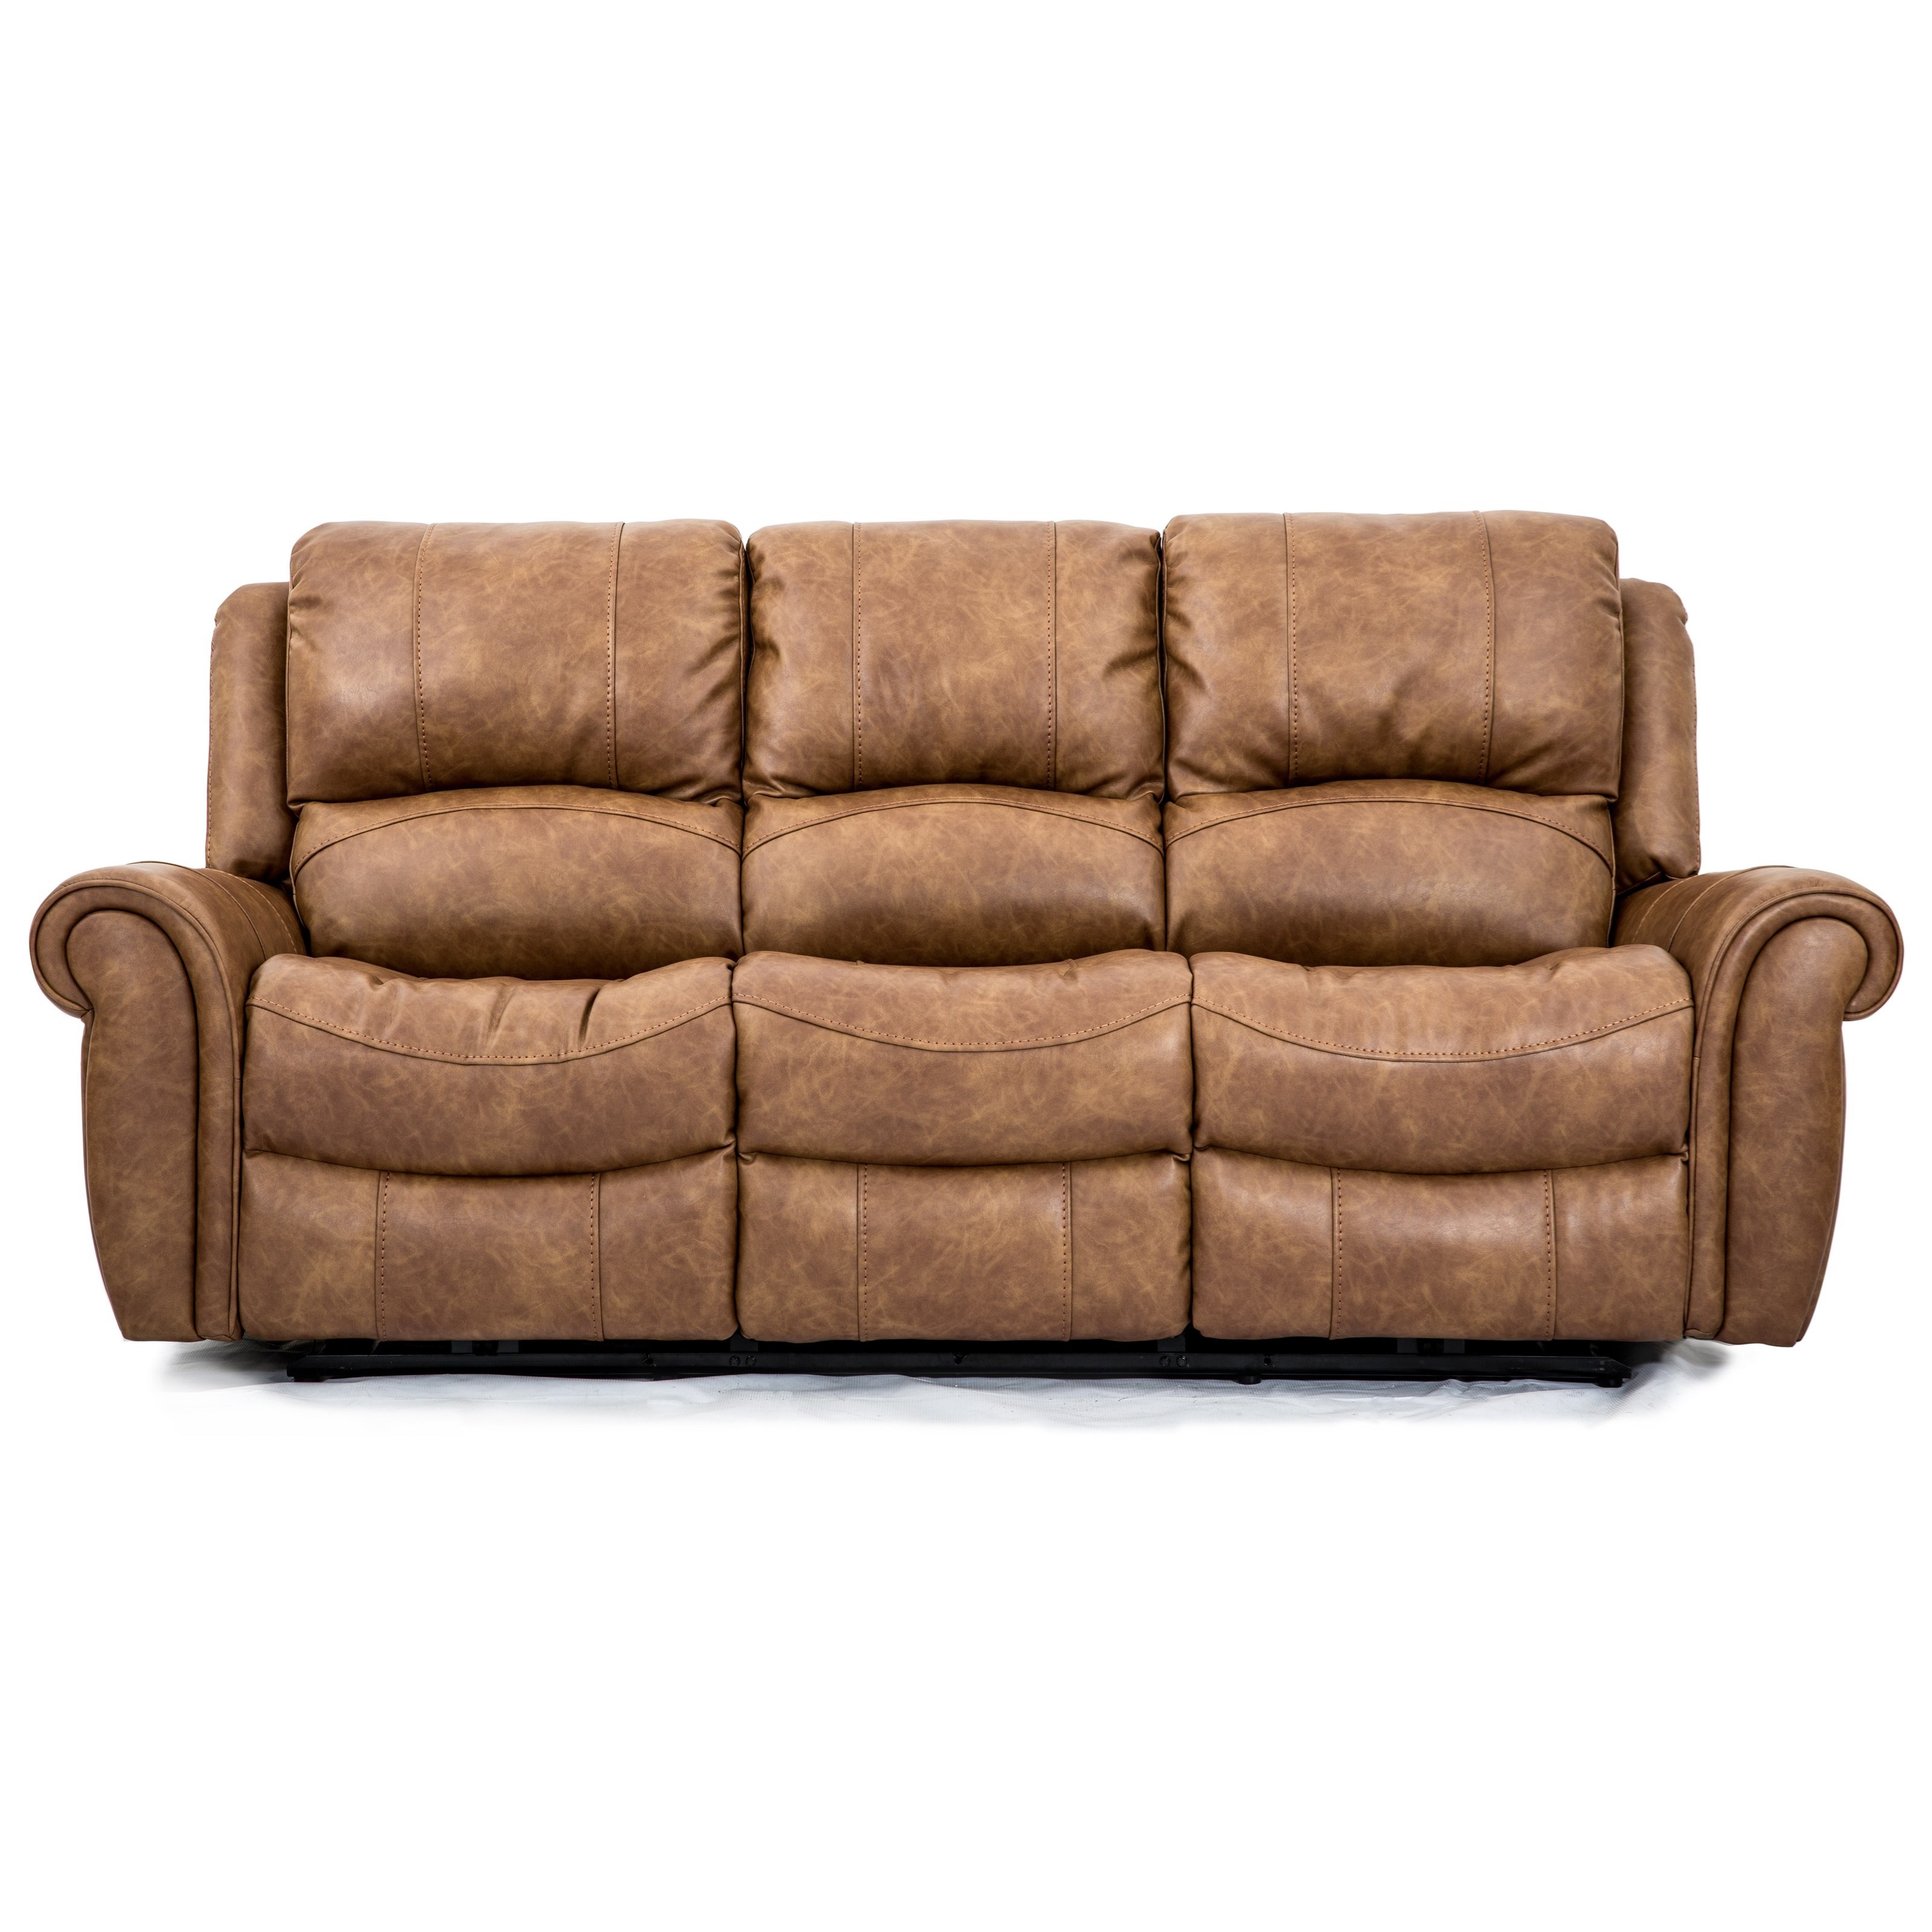 5175M Power Reclining Sofa by Cheers at Lagniappe Home Store